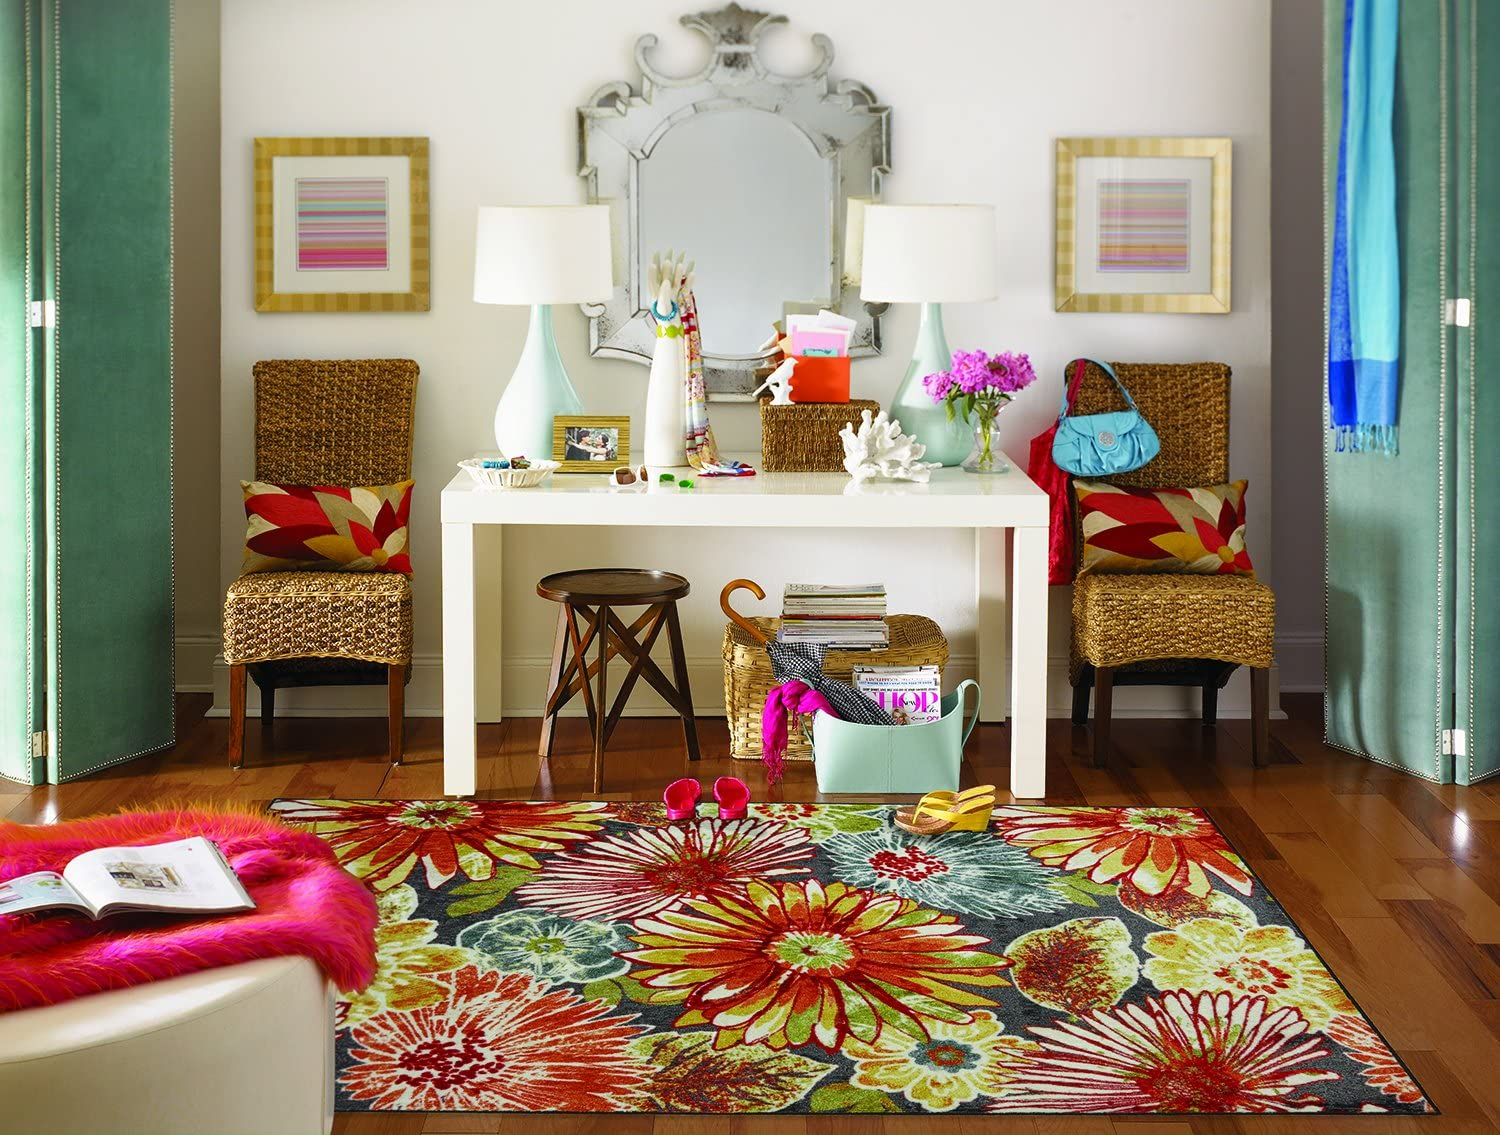 Mohawk Home New Wave Charm Floral Printed Area Rug, 7'6x10', Multicolor